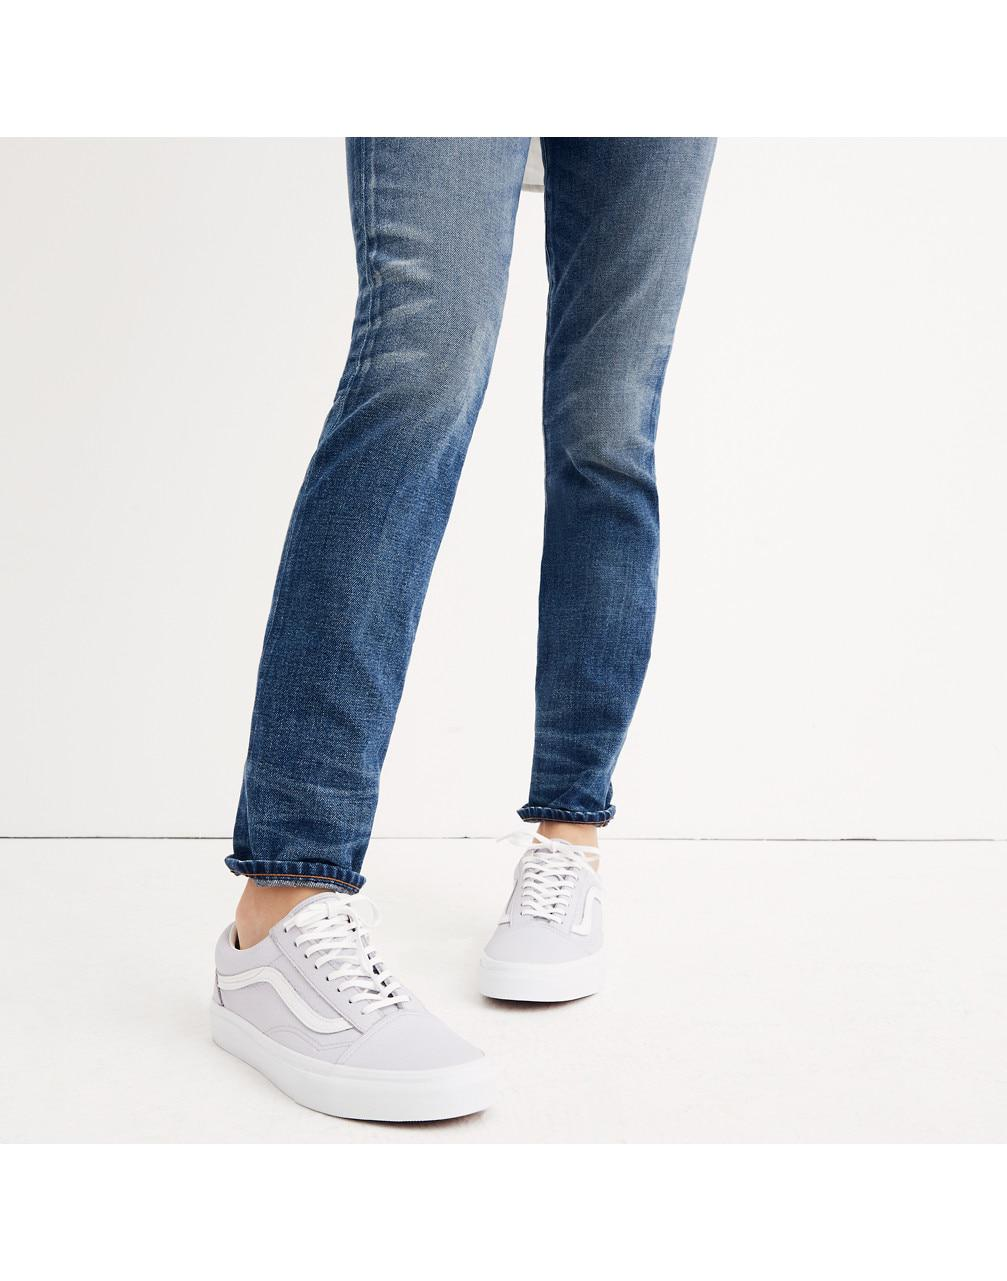 6d8d12e3b042e5 Lyst - Madewell X Vans Unisex Old Skool Lace-up Sneakers In Tumbled ...